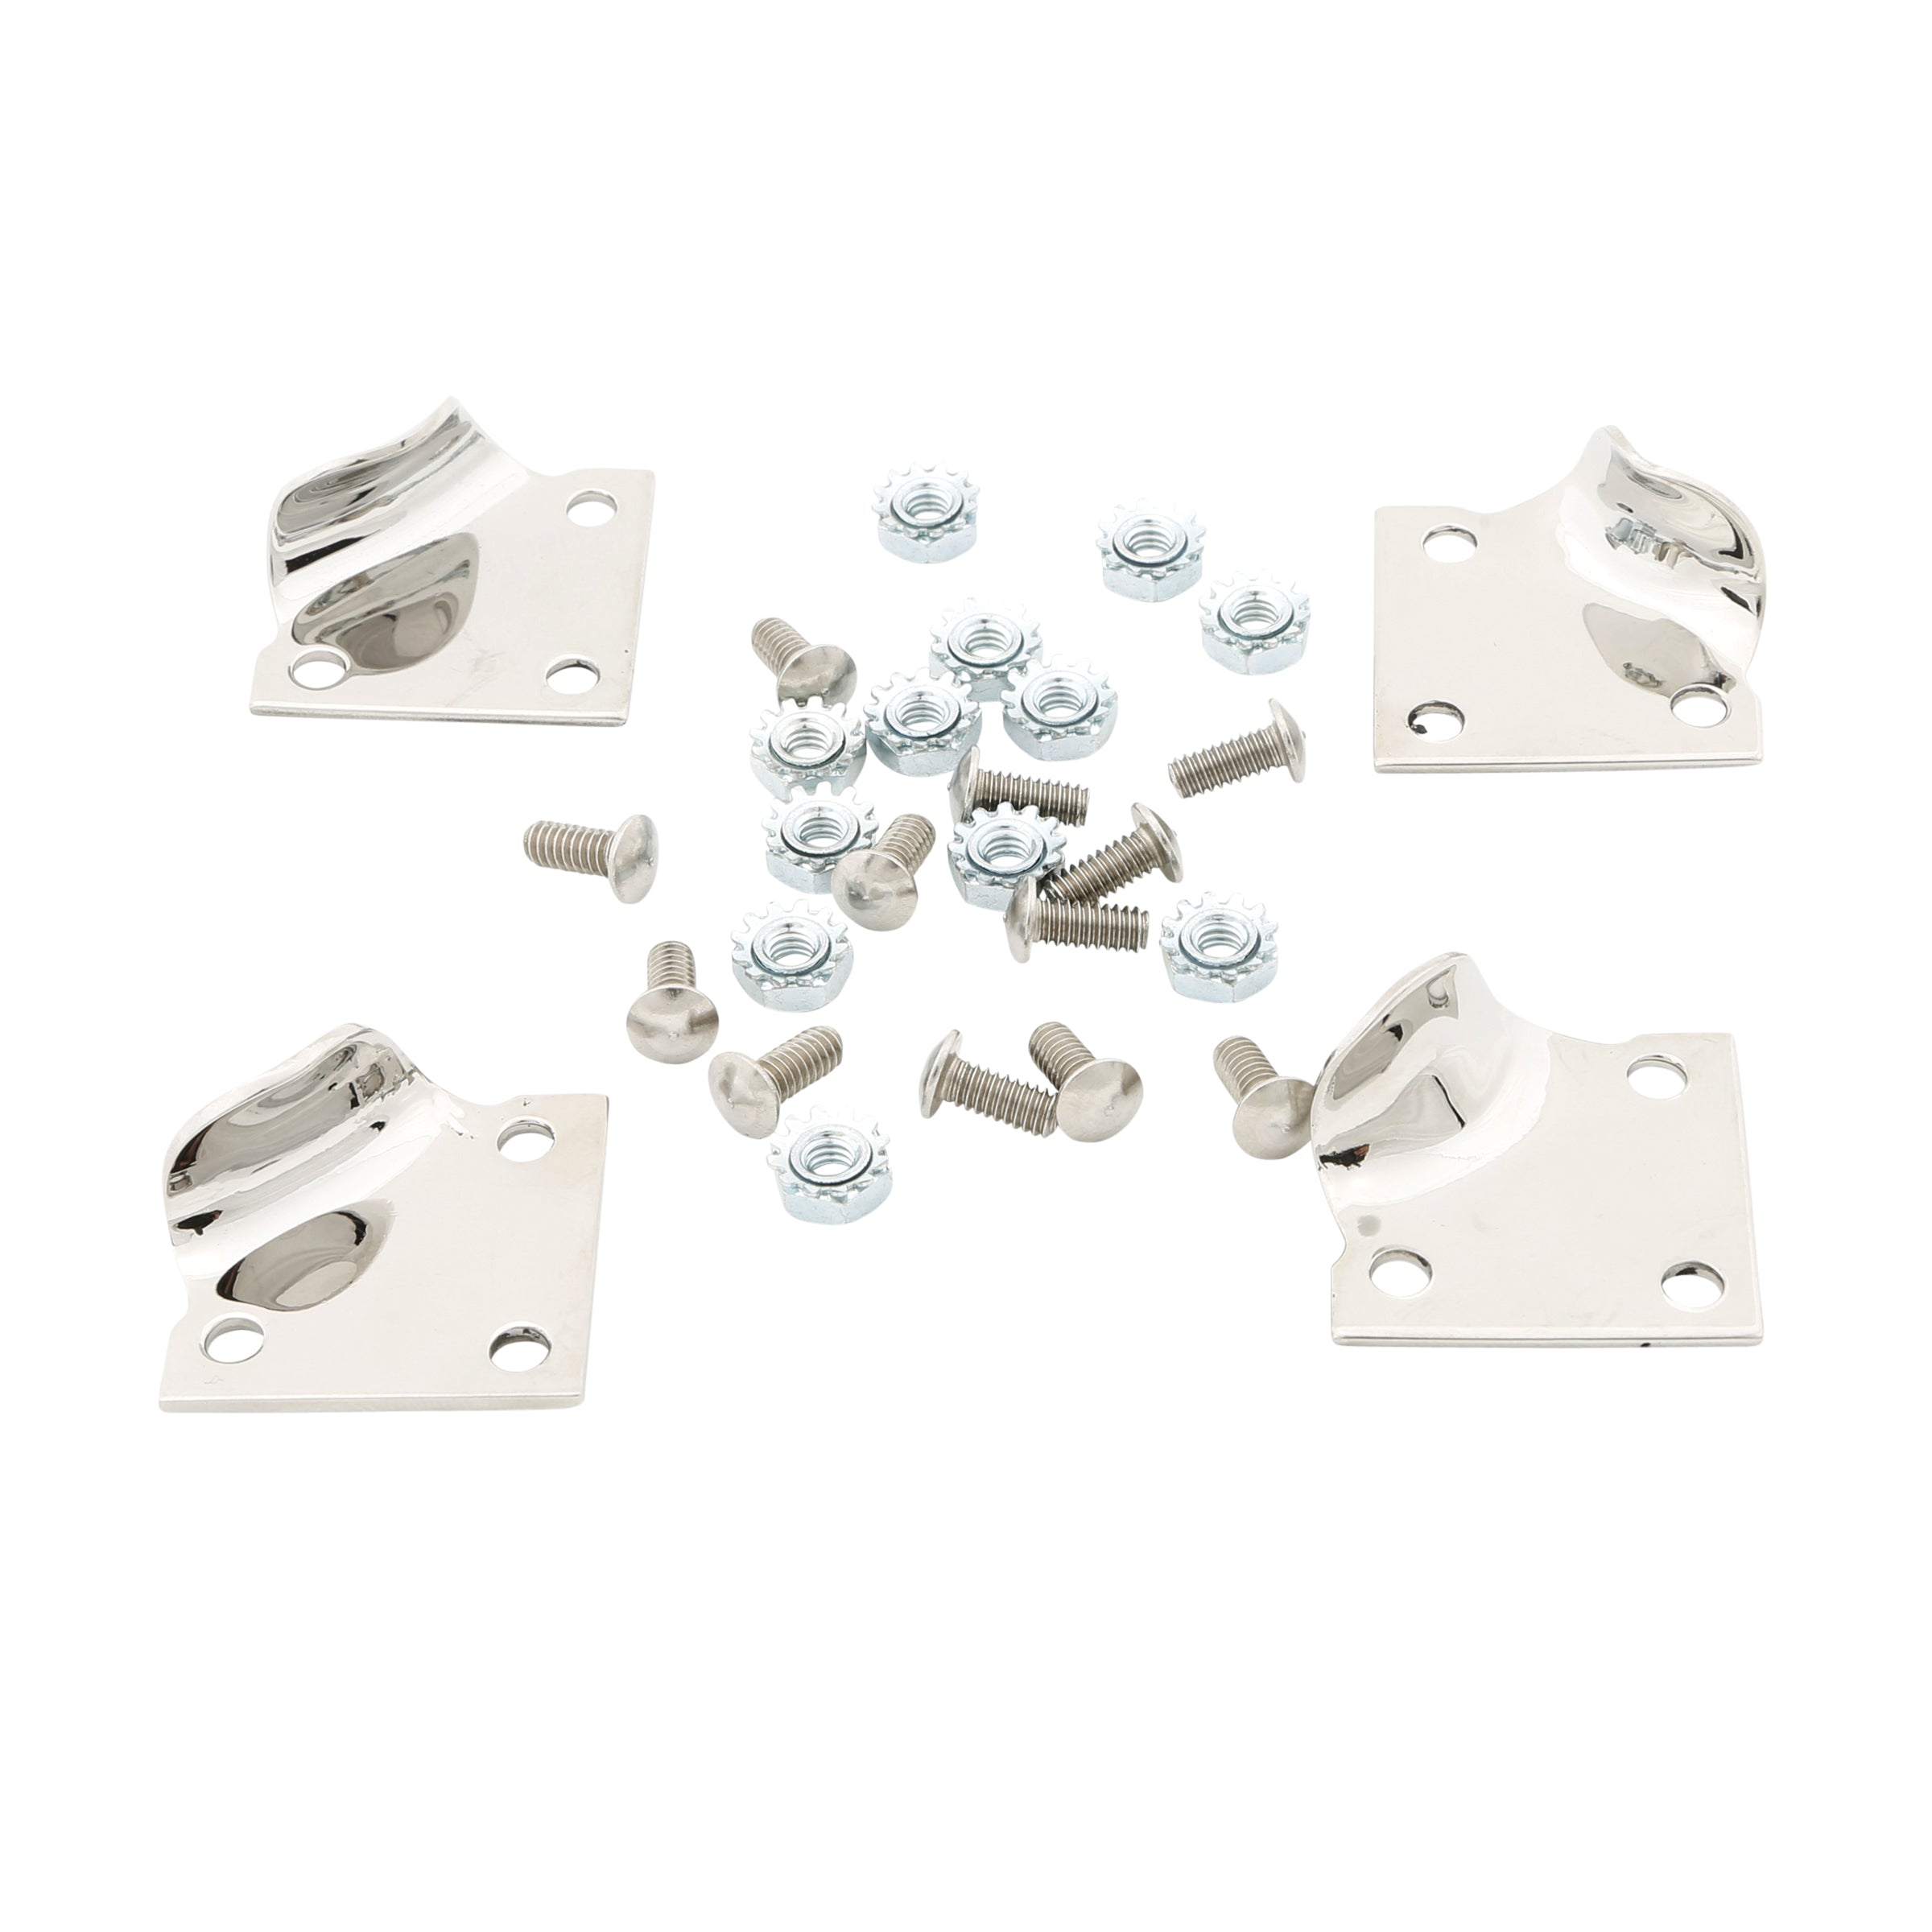 Hood Latch Clip Bracket Set (Stainless Steel) • 1928-31 Model A Ford